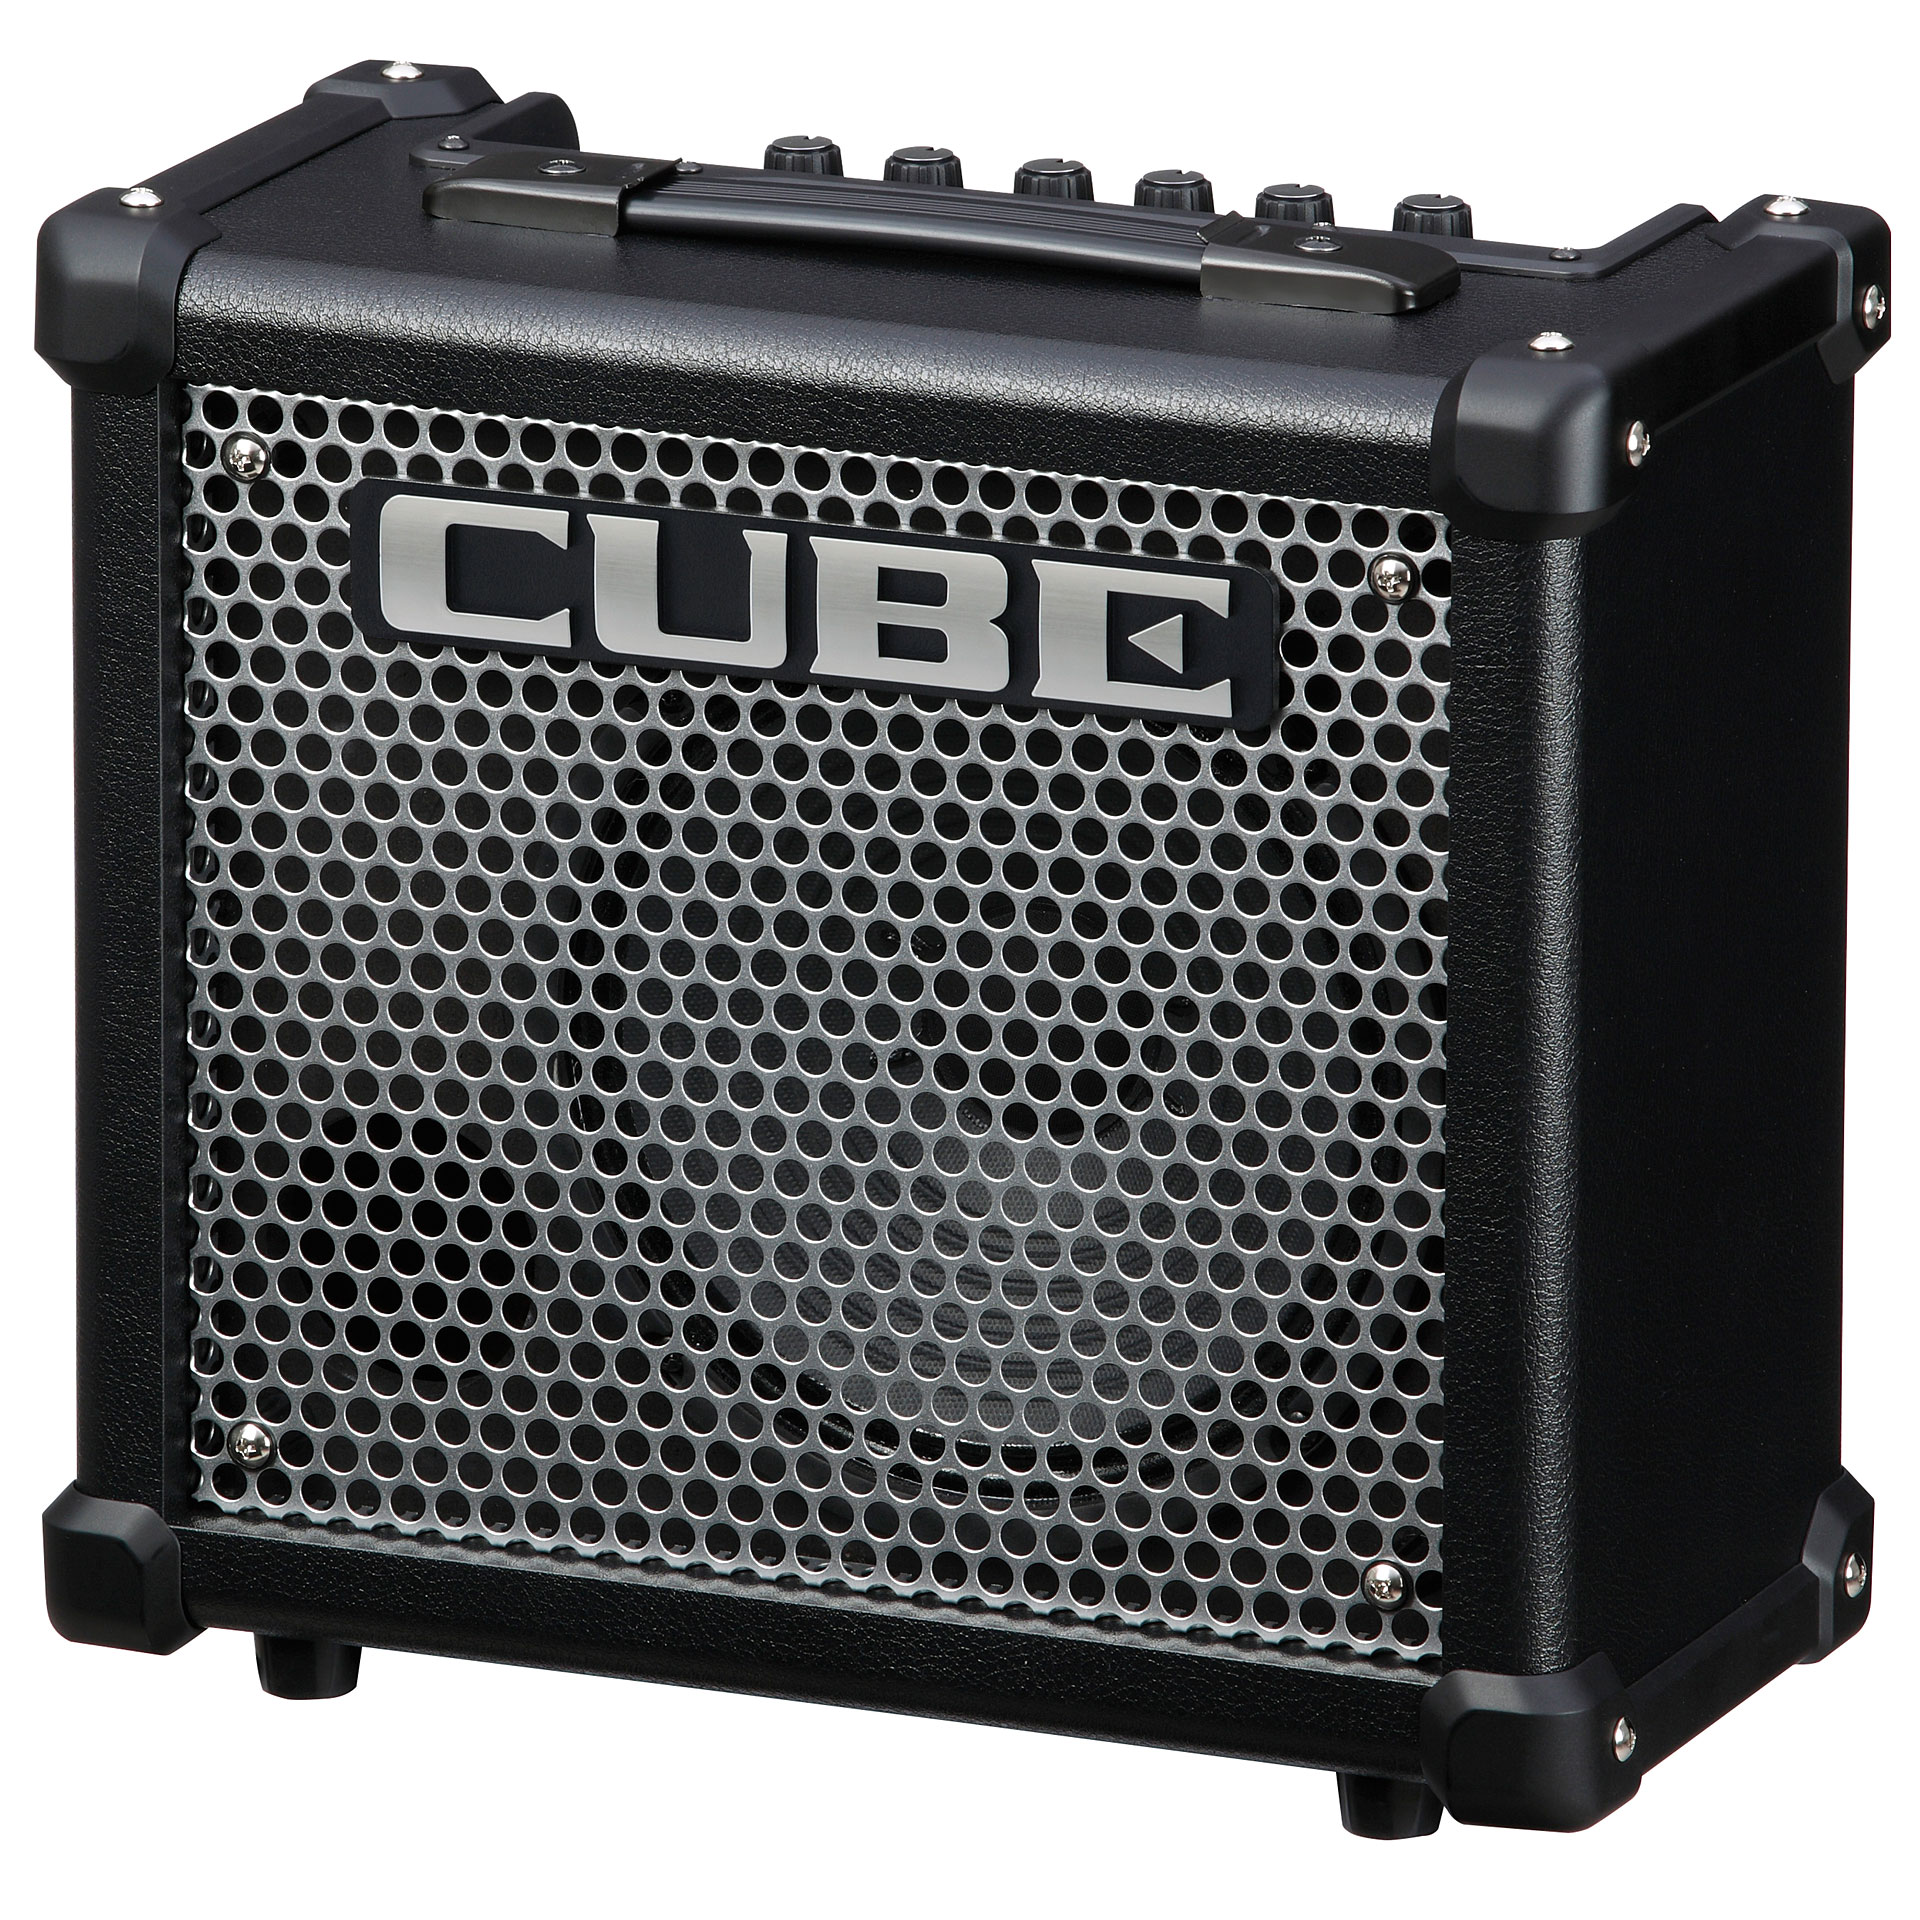 Cube factory online shopping